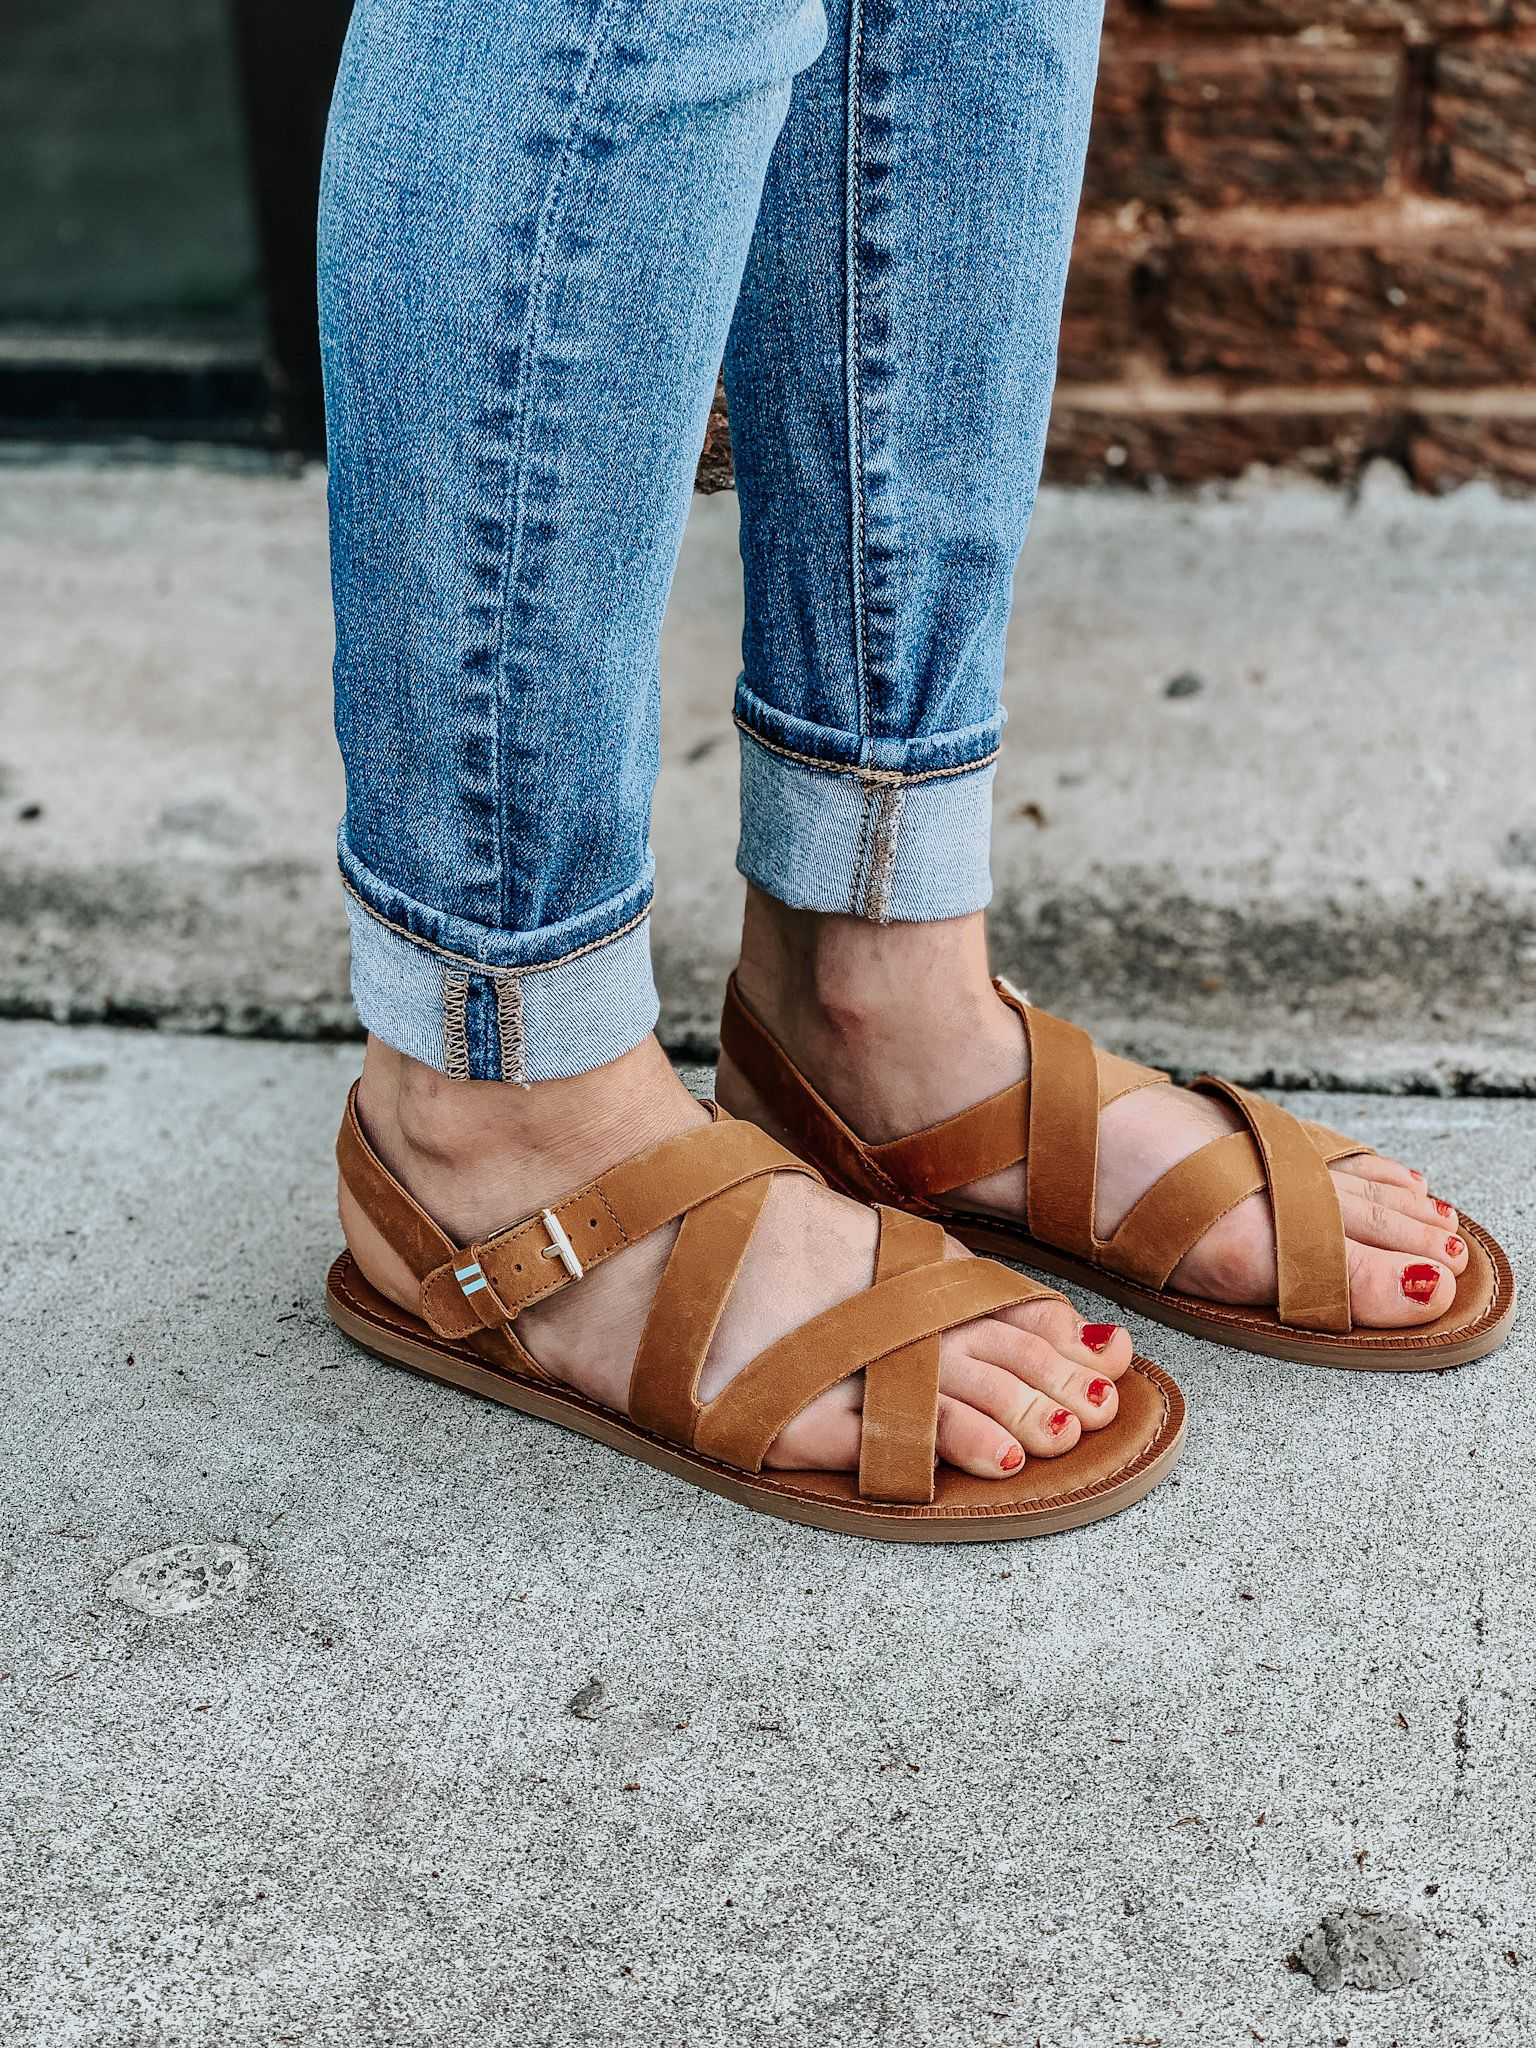 e10db0c0be5 TOMS sicily sandal in 2019 | NEW | Sandals, Minimalist shoes ...